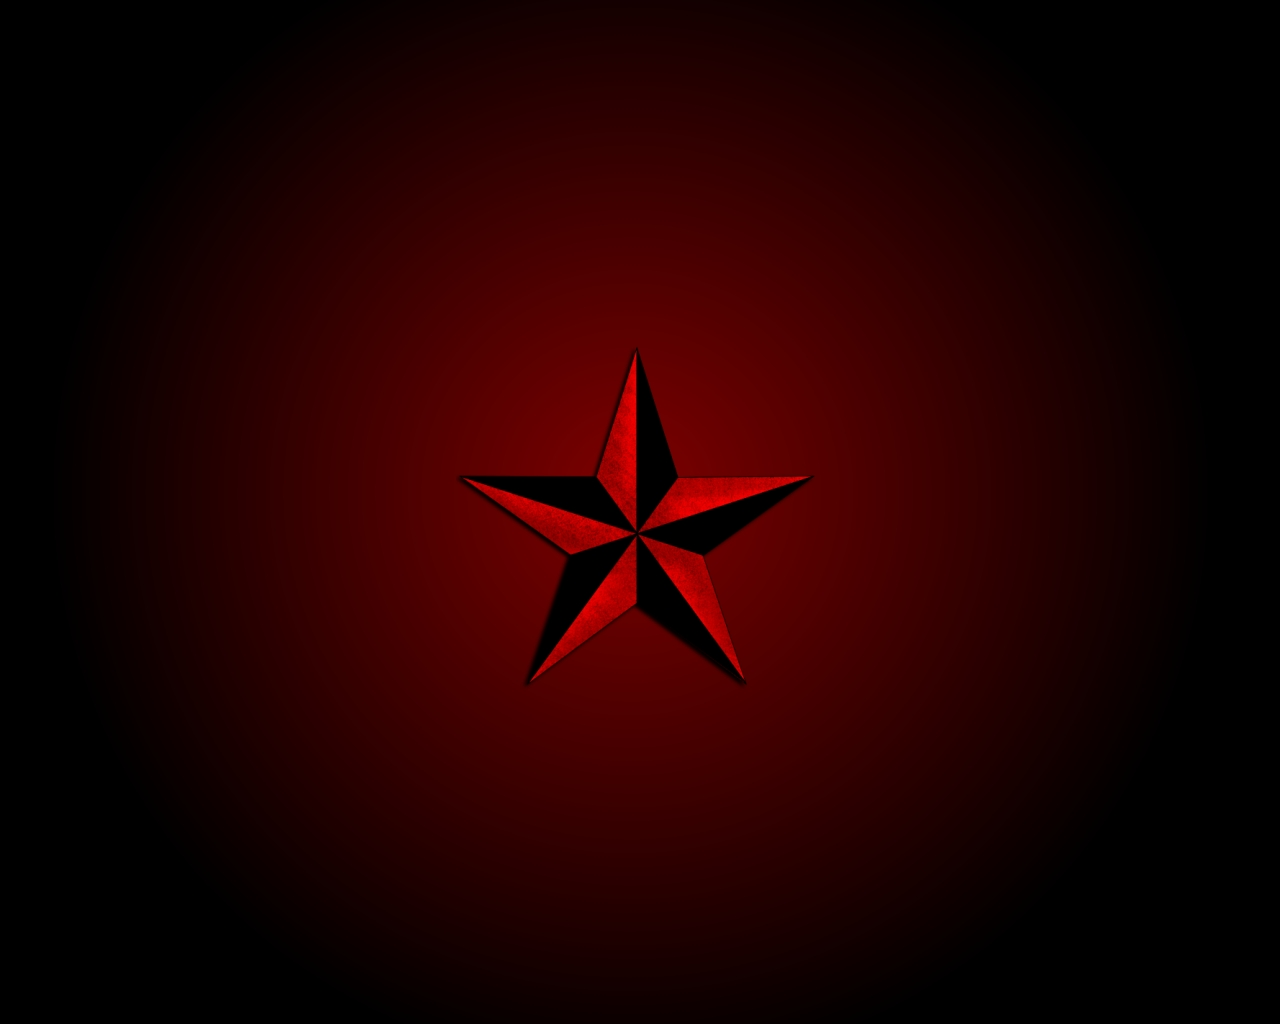 Nautical Star Wallpaper